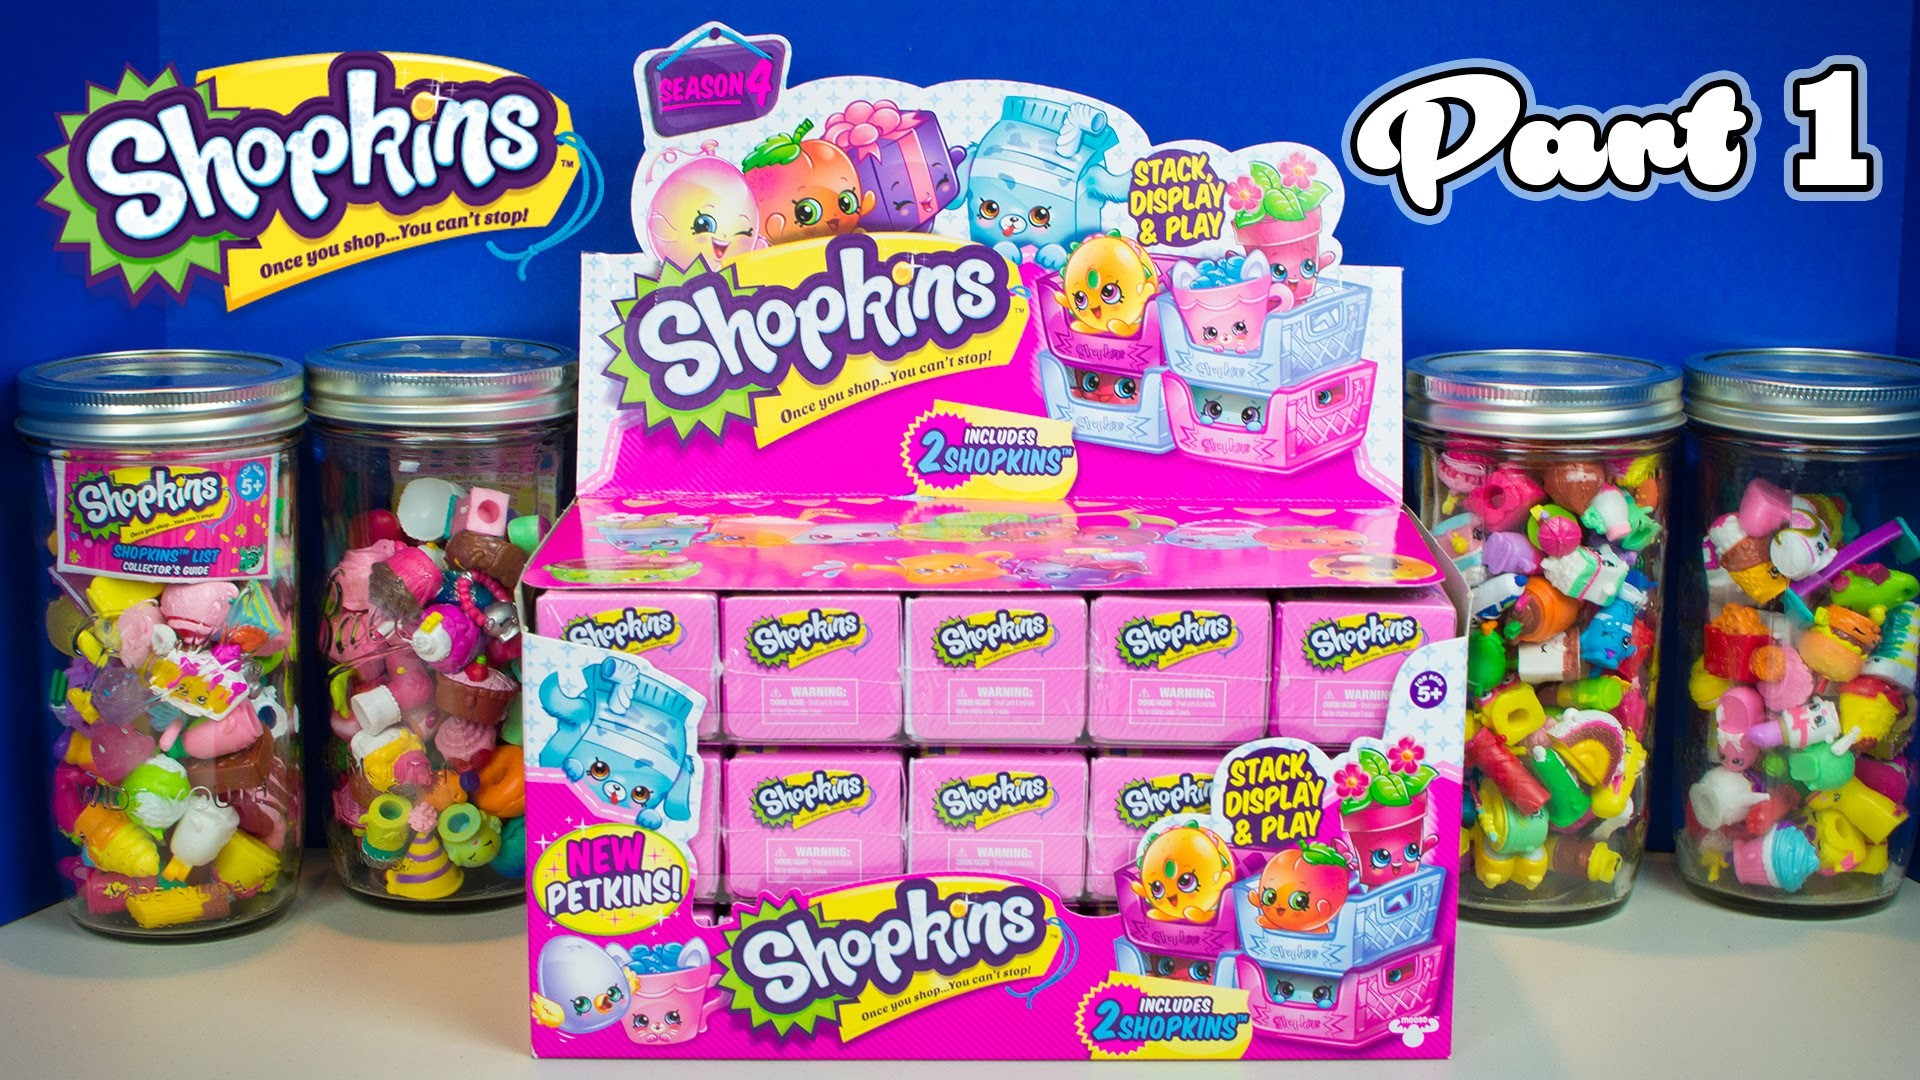 SHOPKINS SEASON 4 PETKINS Blind Baskets Part 1   Hunt for a Limited Edition  Shopkin! – YouTube